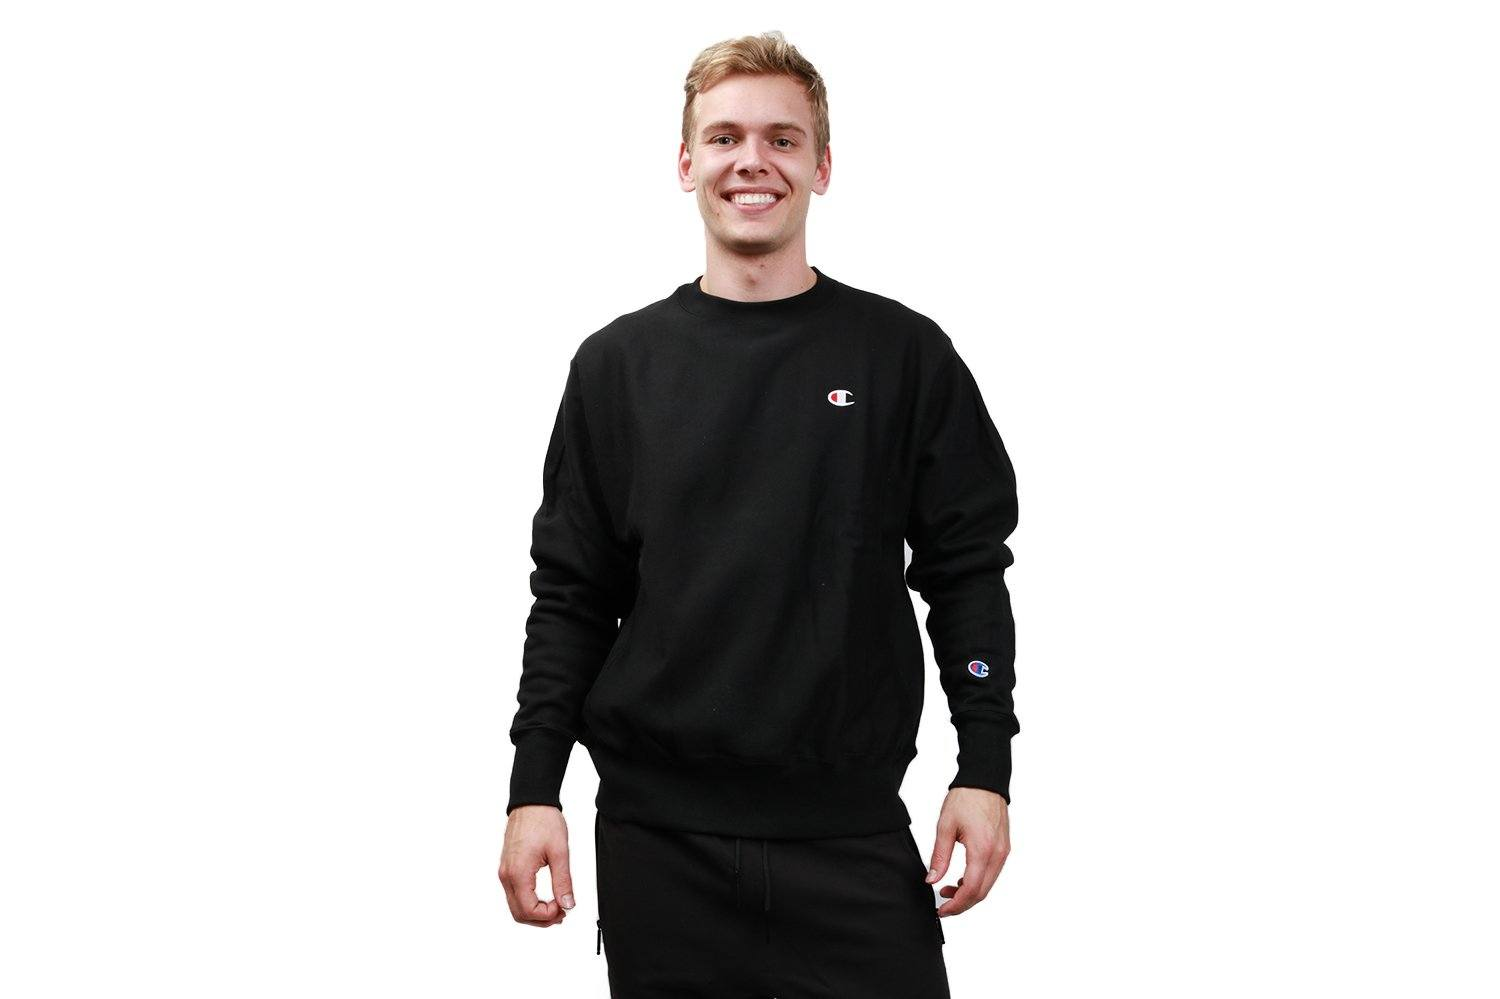 MENS FLC PULLOVER 'C' CHEST - GF70 MENS SOFTGOODS CHAMPION BLACK 2XL